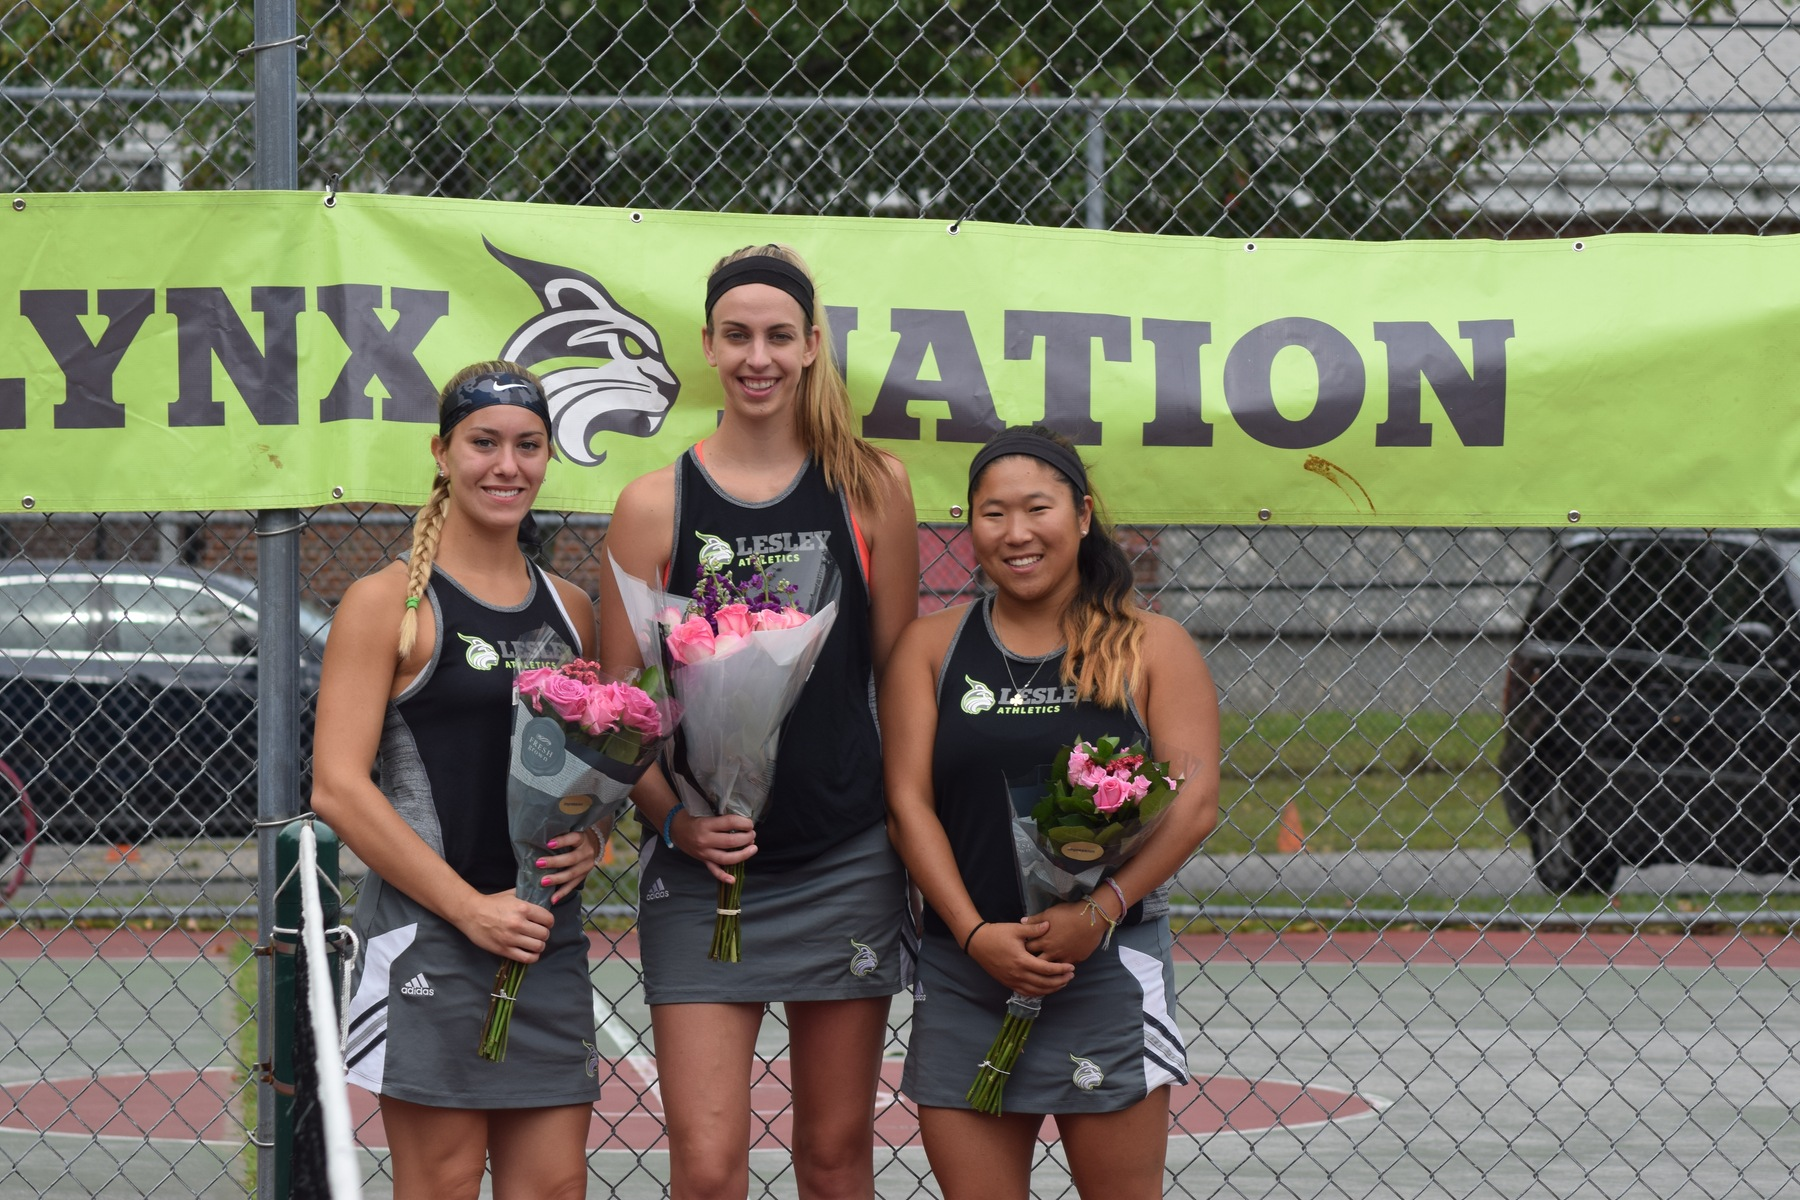 Lynx Clinch Playoff Berth on Senior Day